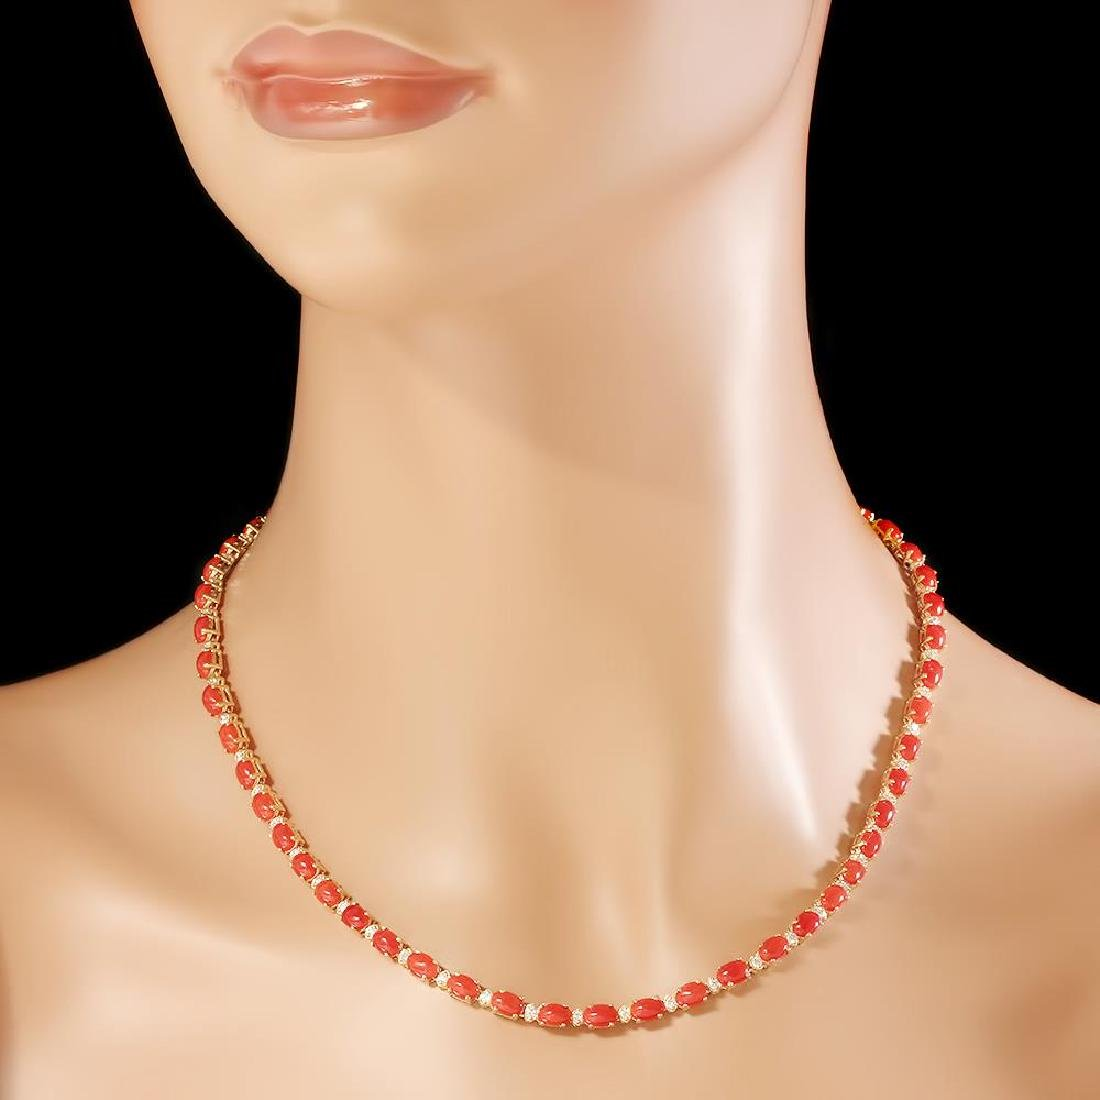 14K Gold 17.61ct Coral 1.17cts Diamond Necklace - 3